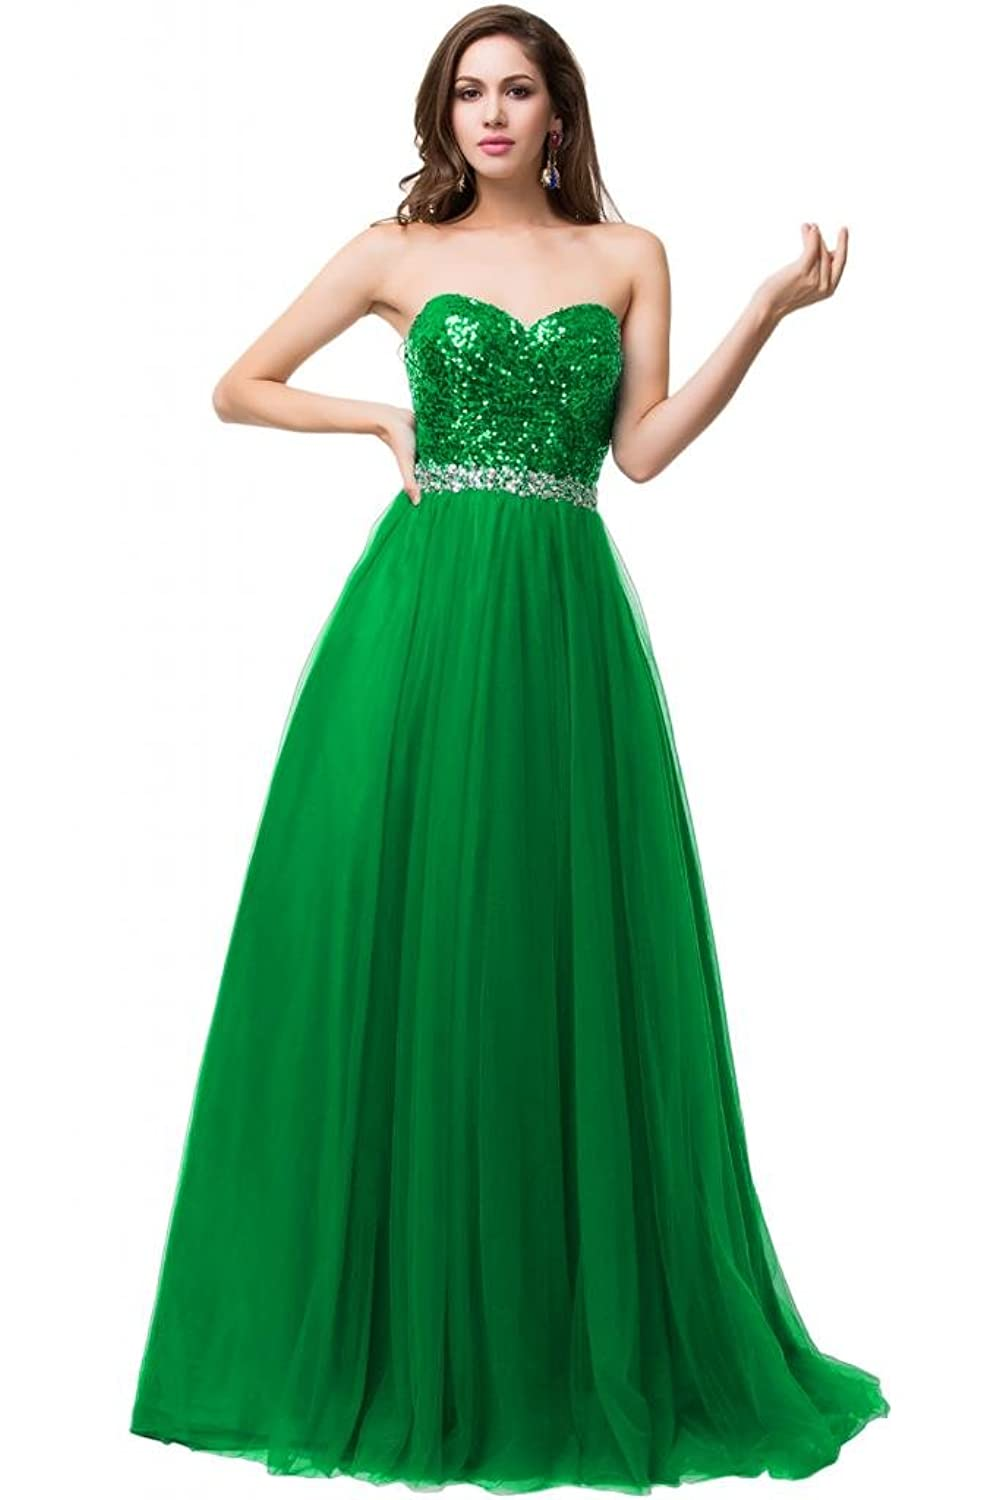 Sunvary 2015 Sweetheart A Line Paillette Crystal Prom Dresses Evening Gowns